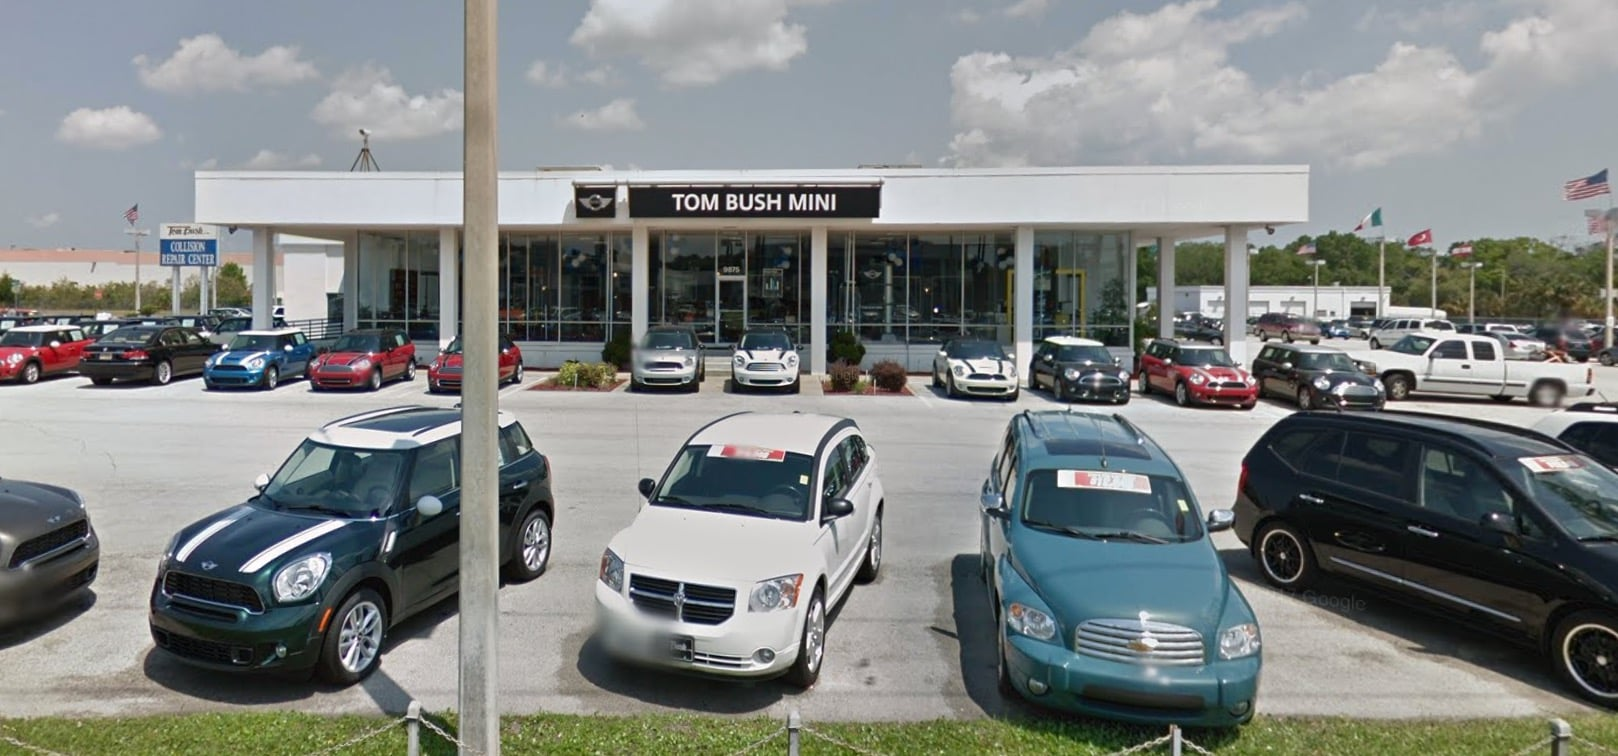 About Tom Bush Family Of Dealerships